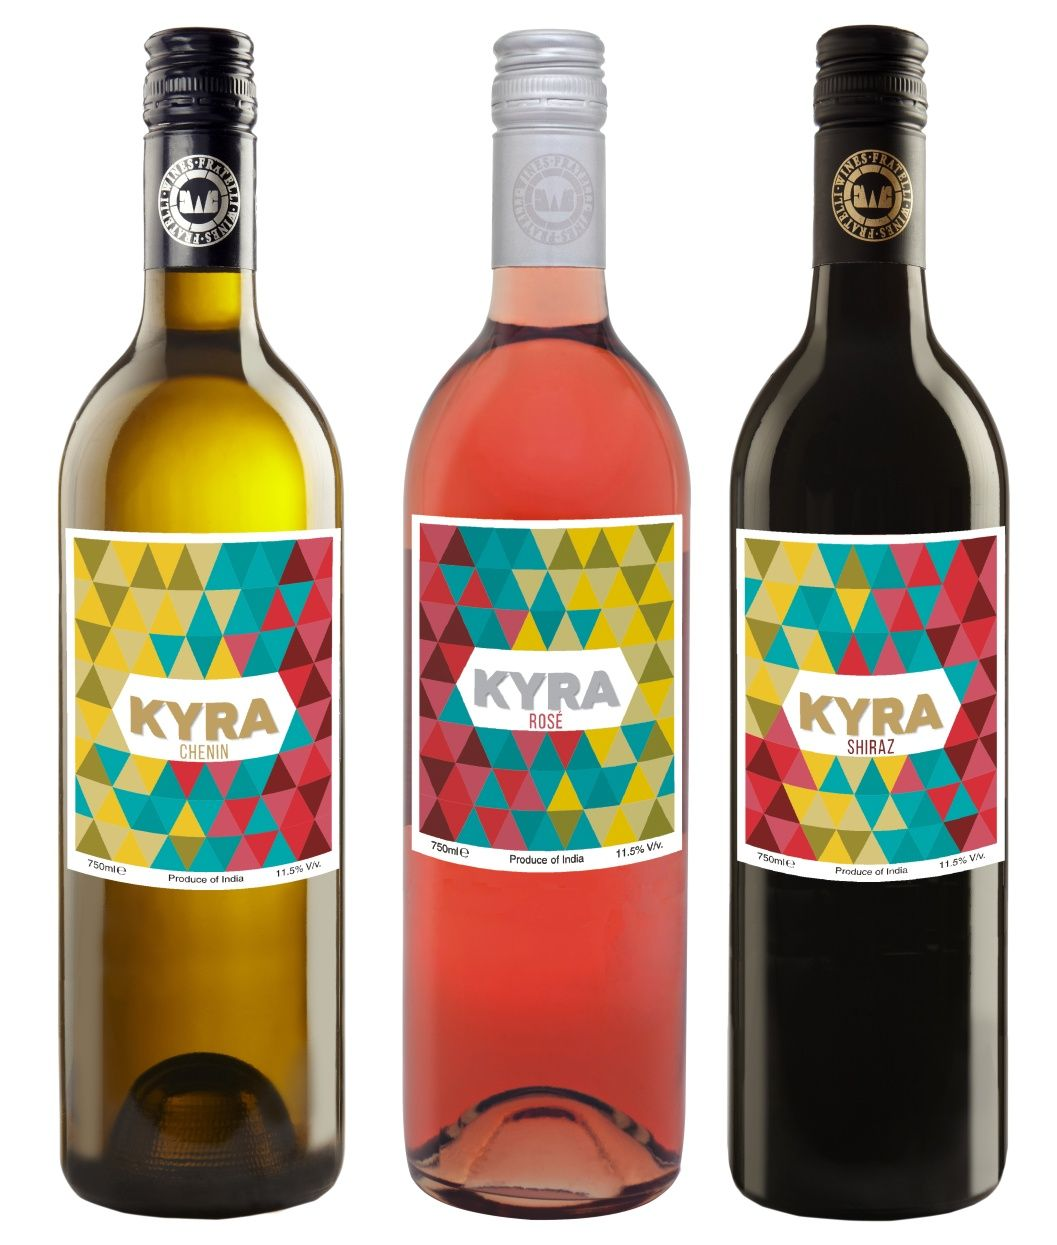 Label Design For Kyra Range Of Wines Chenin Rose And Shiraz From Fratelli Wines Wine Bottle Wines Label Design